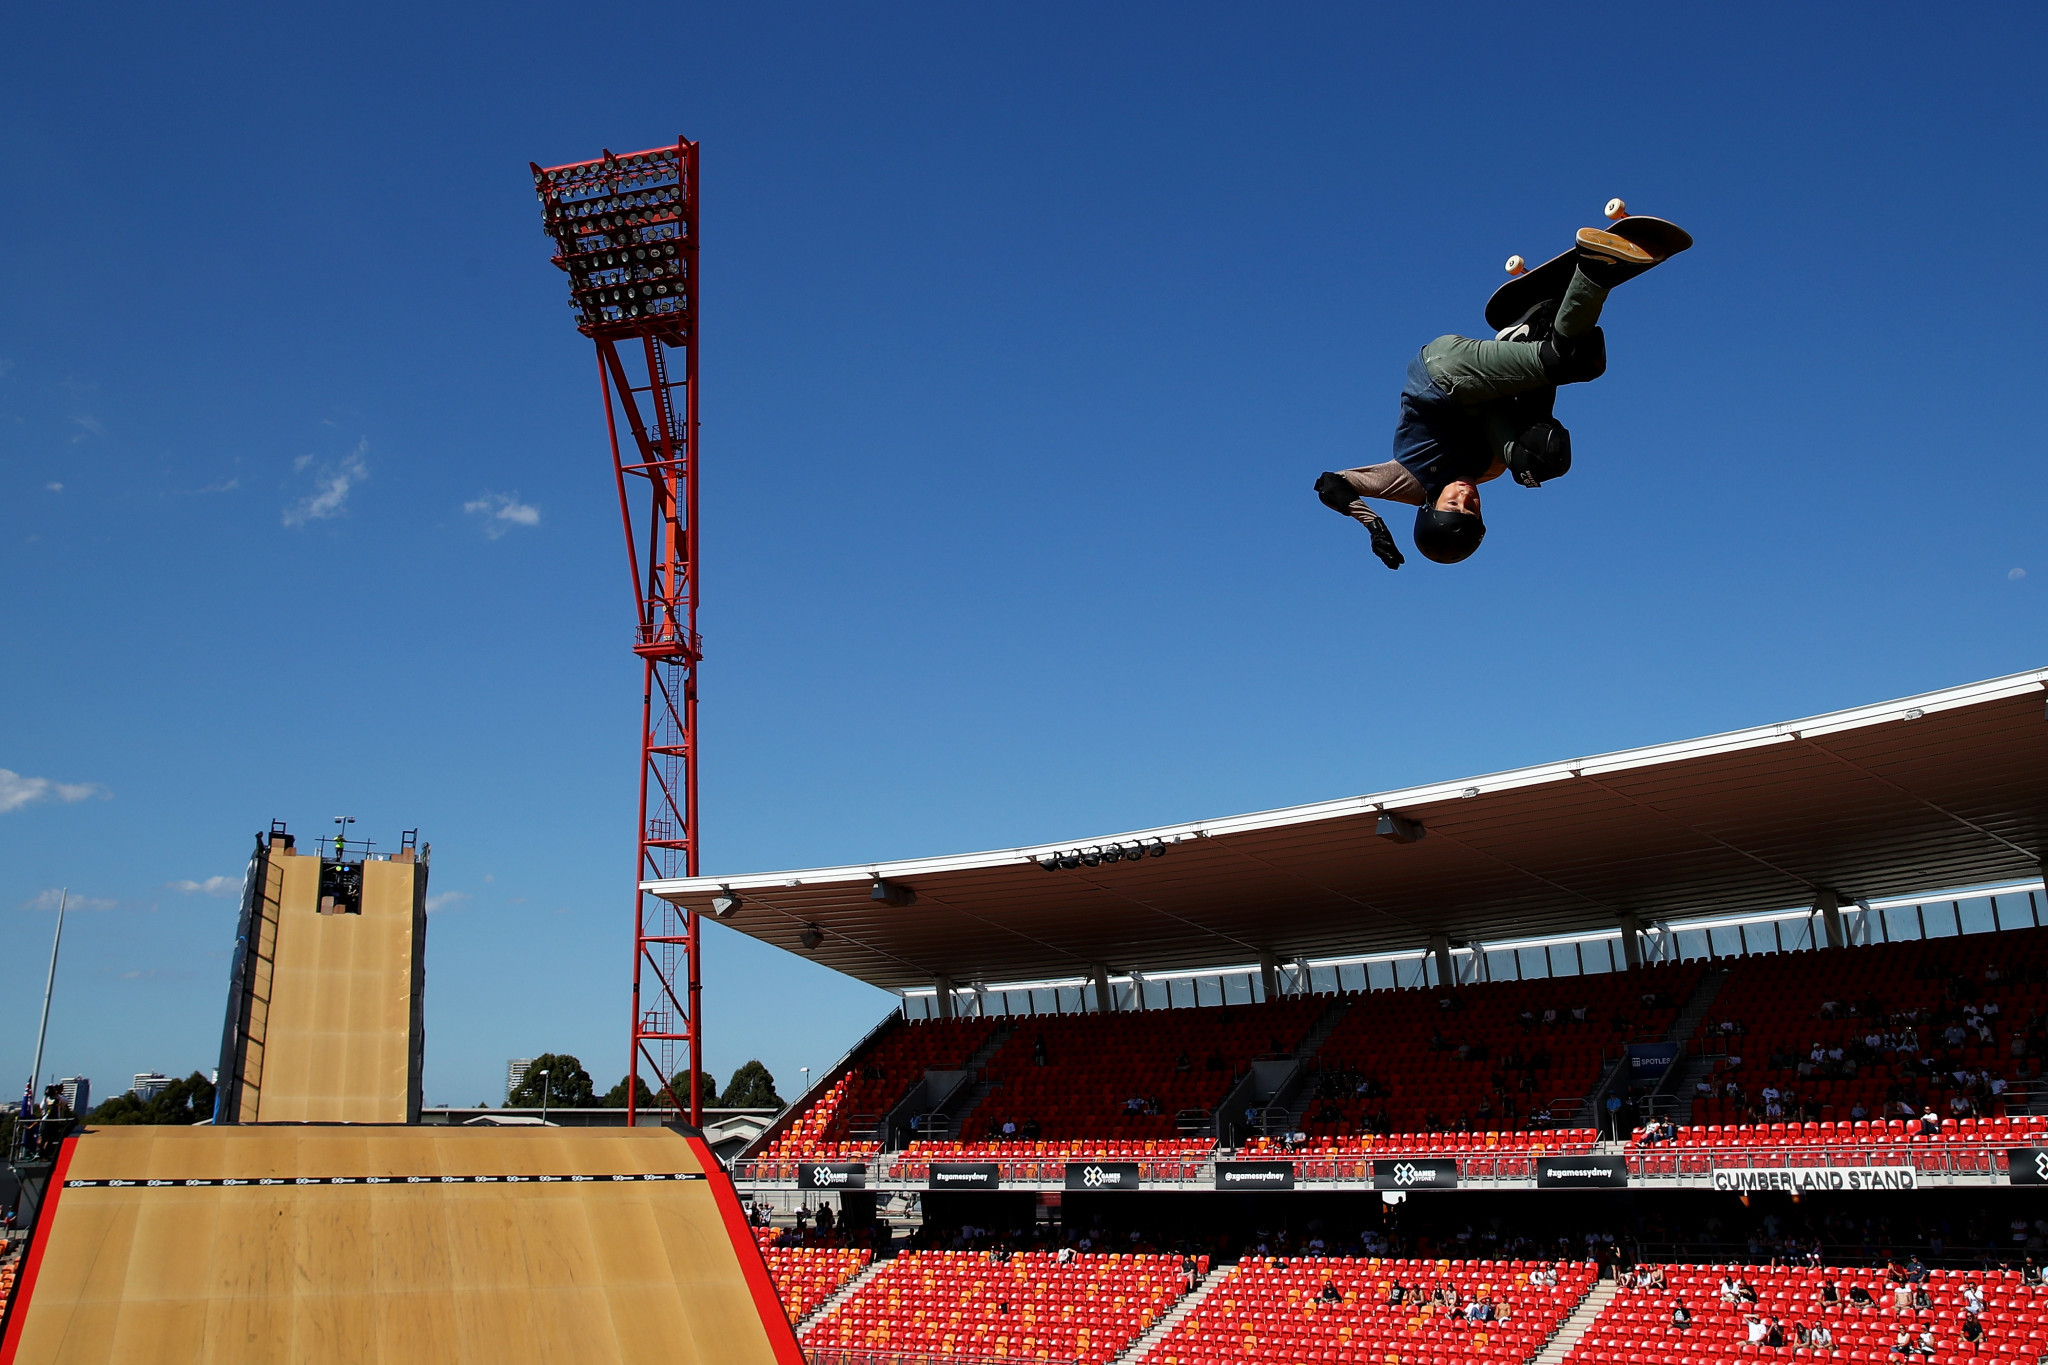 Skateboarding will make its debut on the Olympic programme at Tokyo 2020 ©Getty Images